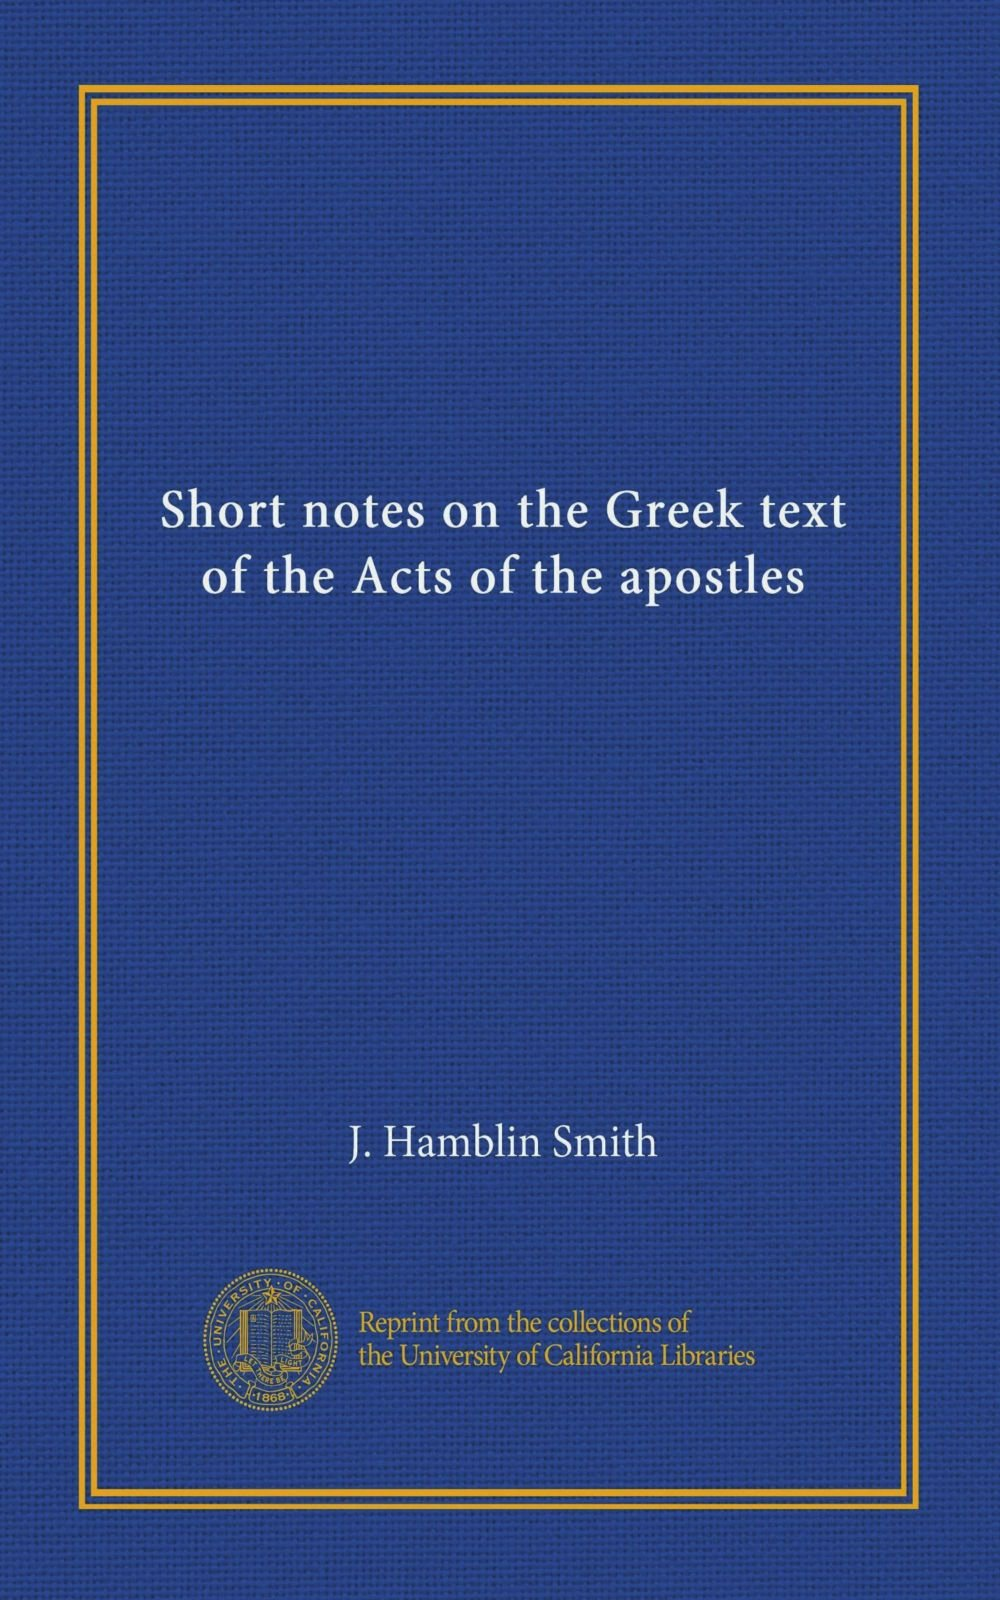 Short notes on the Greek text of the Acts of the apostles pdf